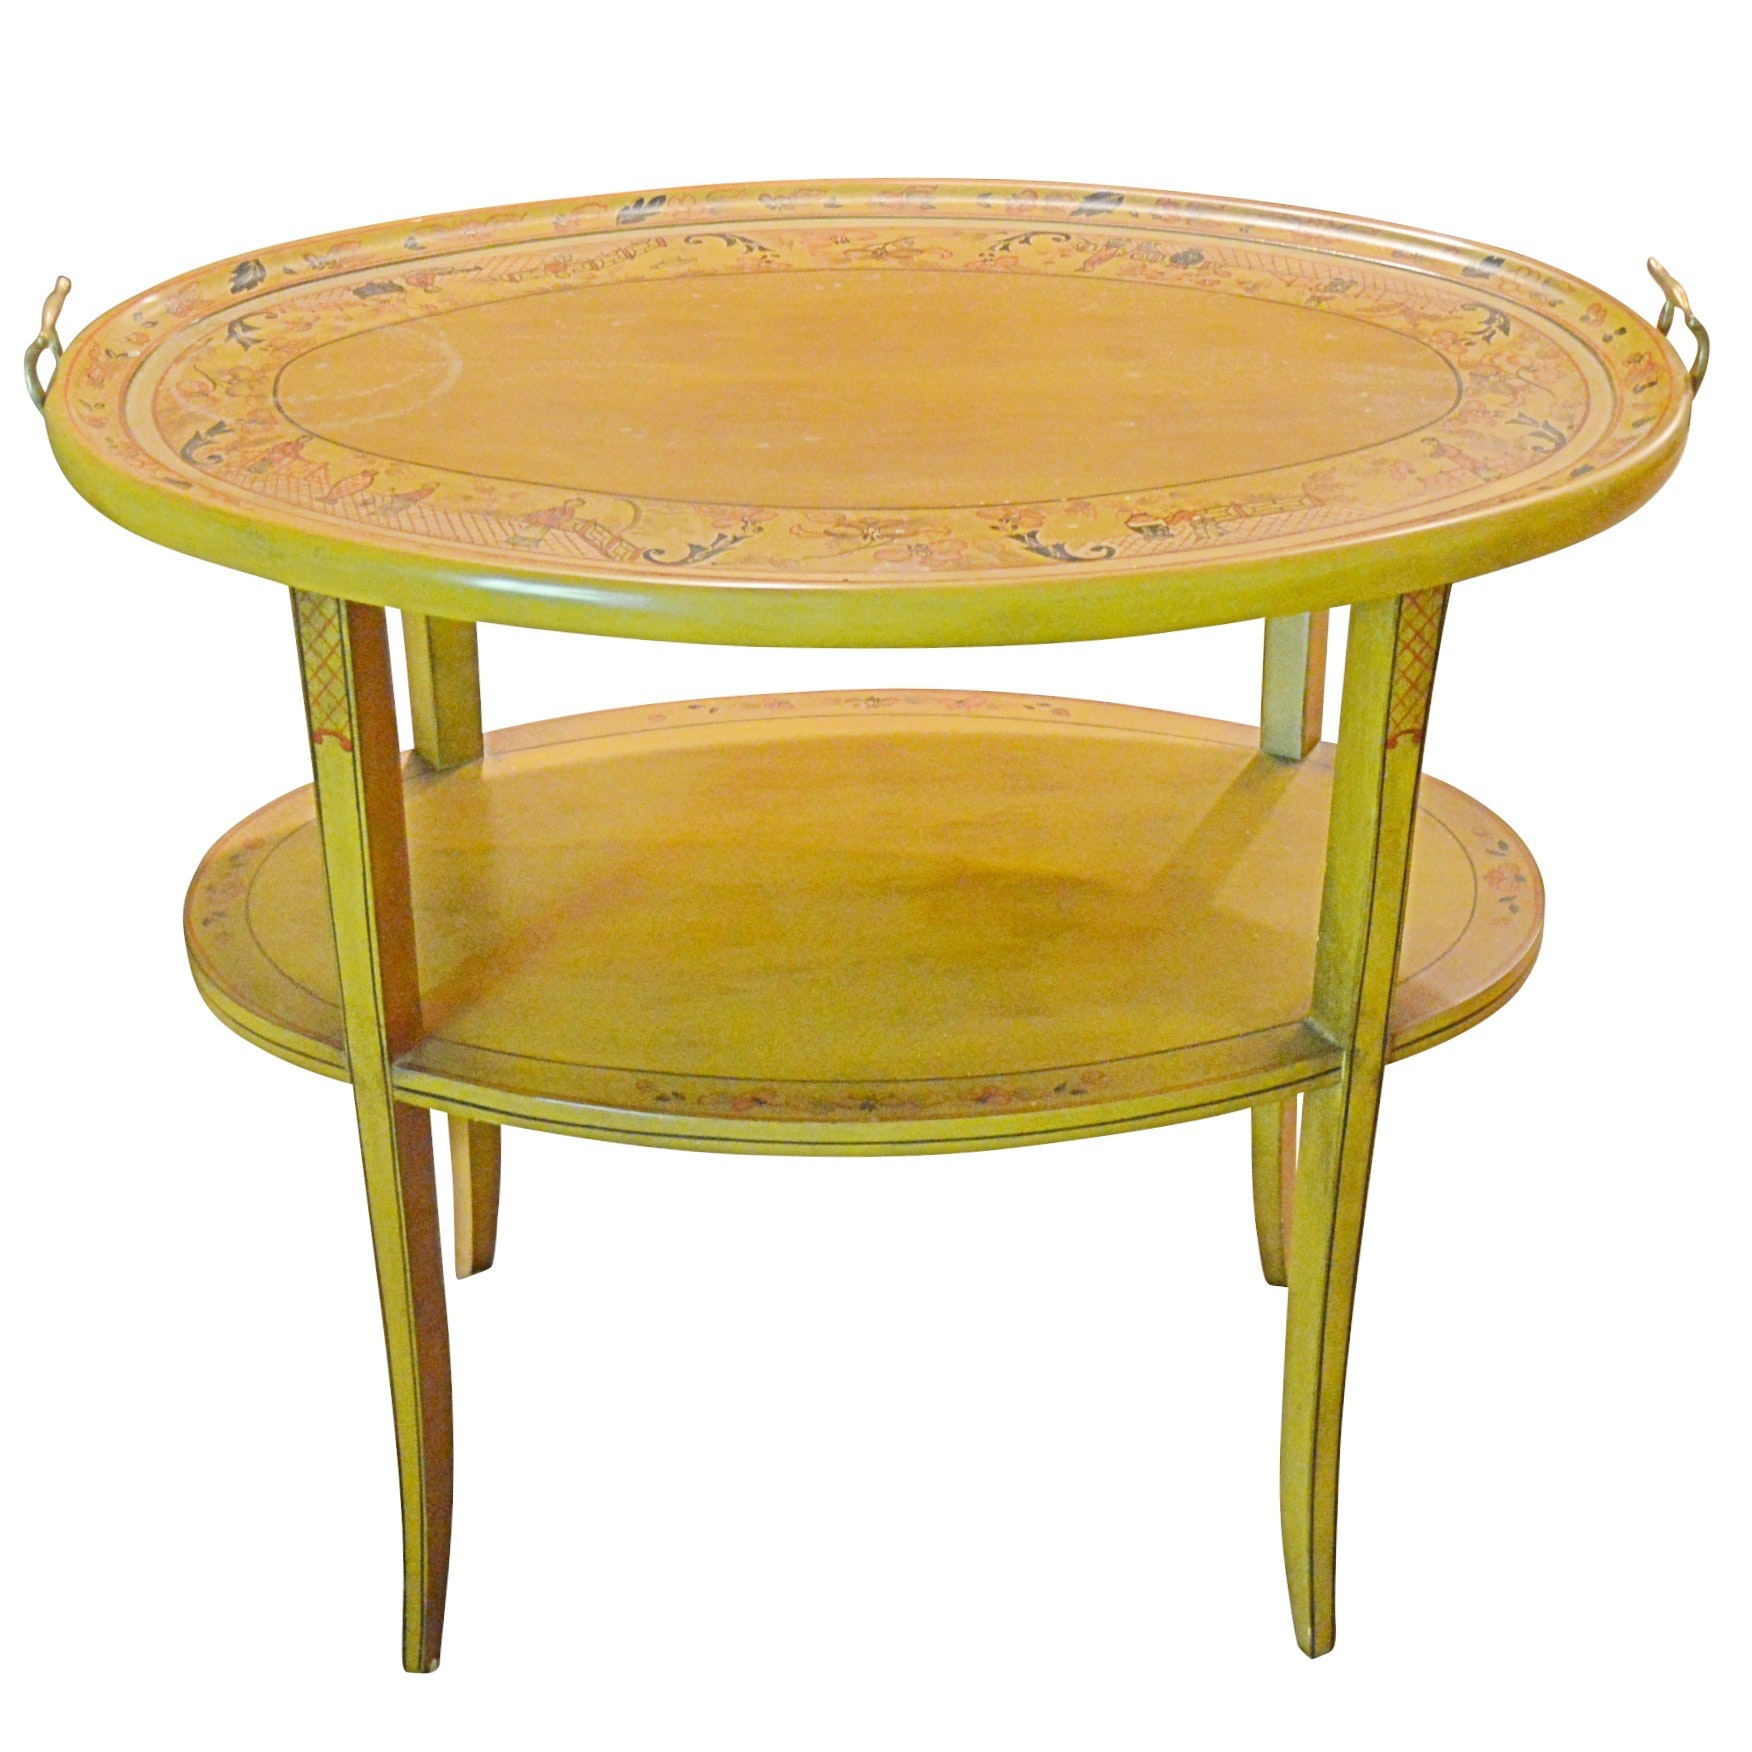 Chinoiserie Style Painted Wooden Two-Tier Serving Table